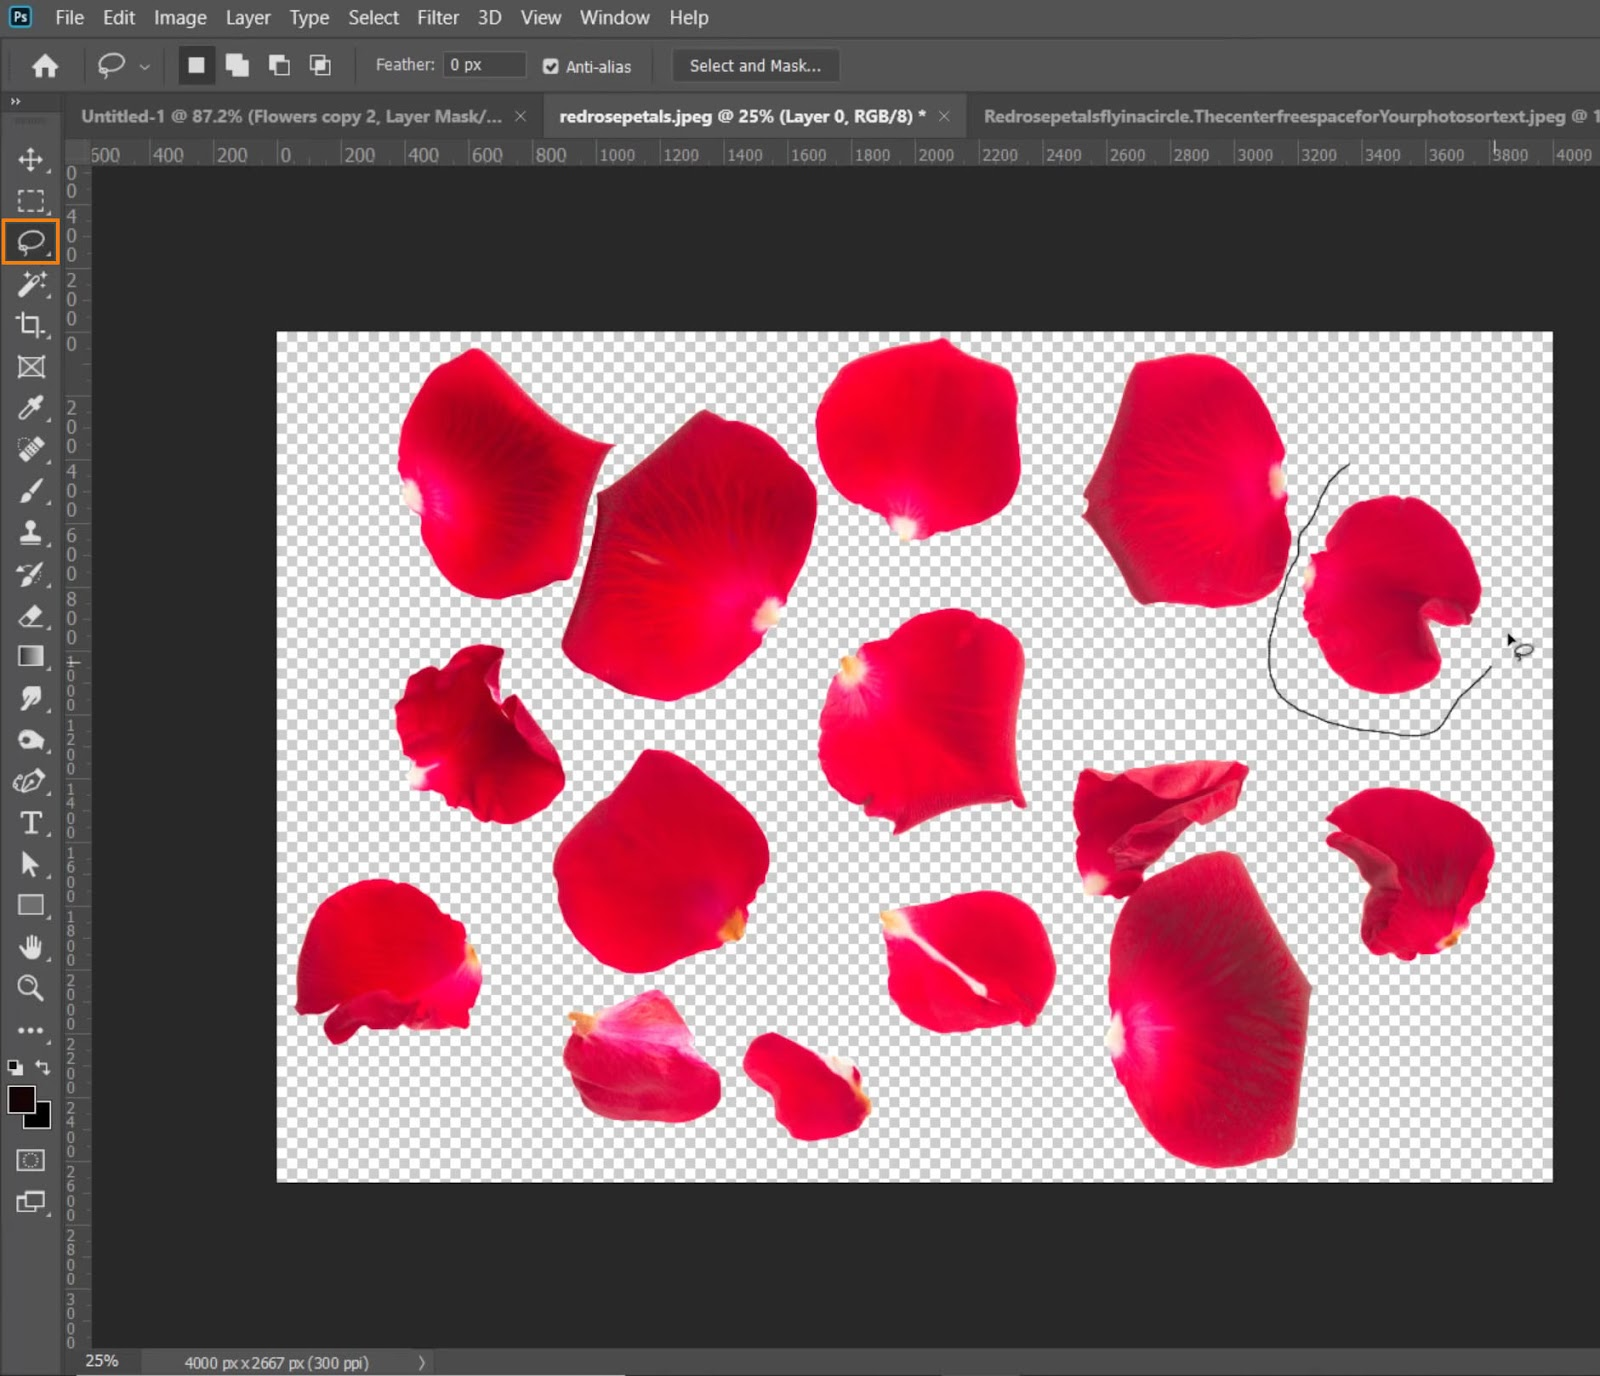 Use the Lasso tool to freehand an outline around a rose petal